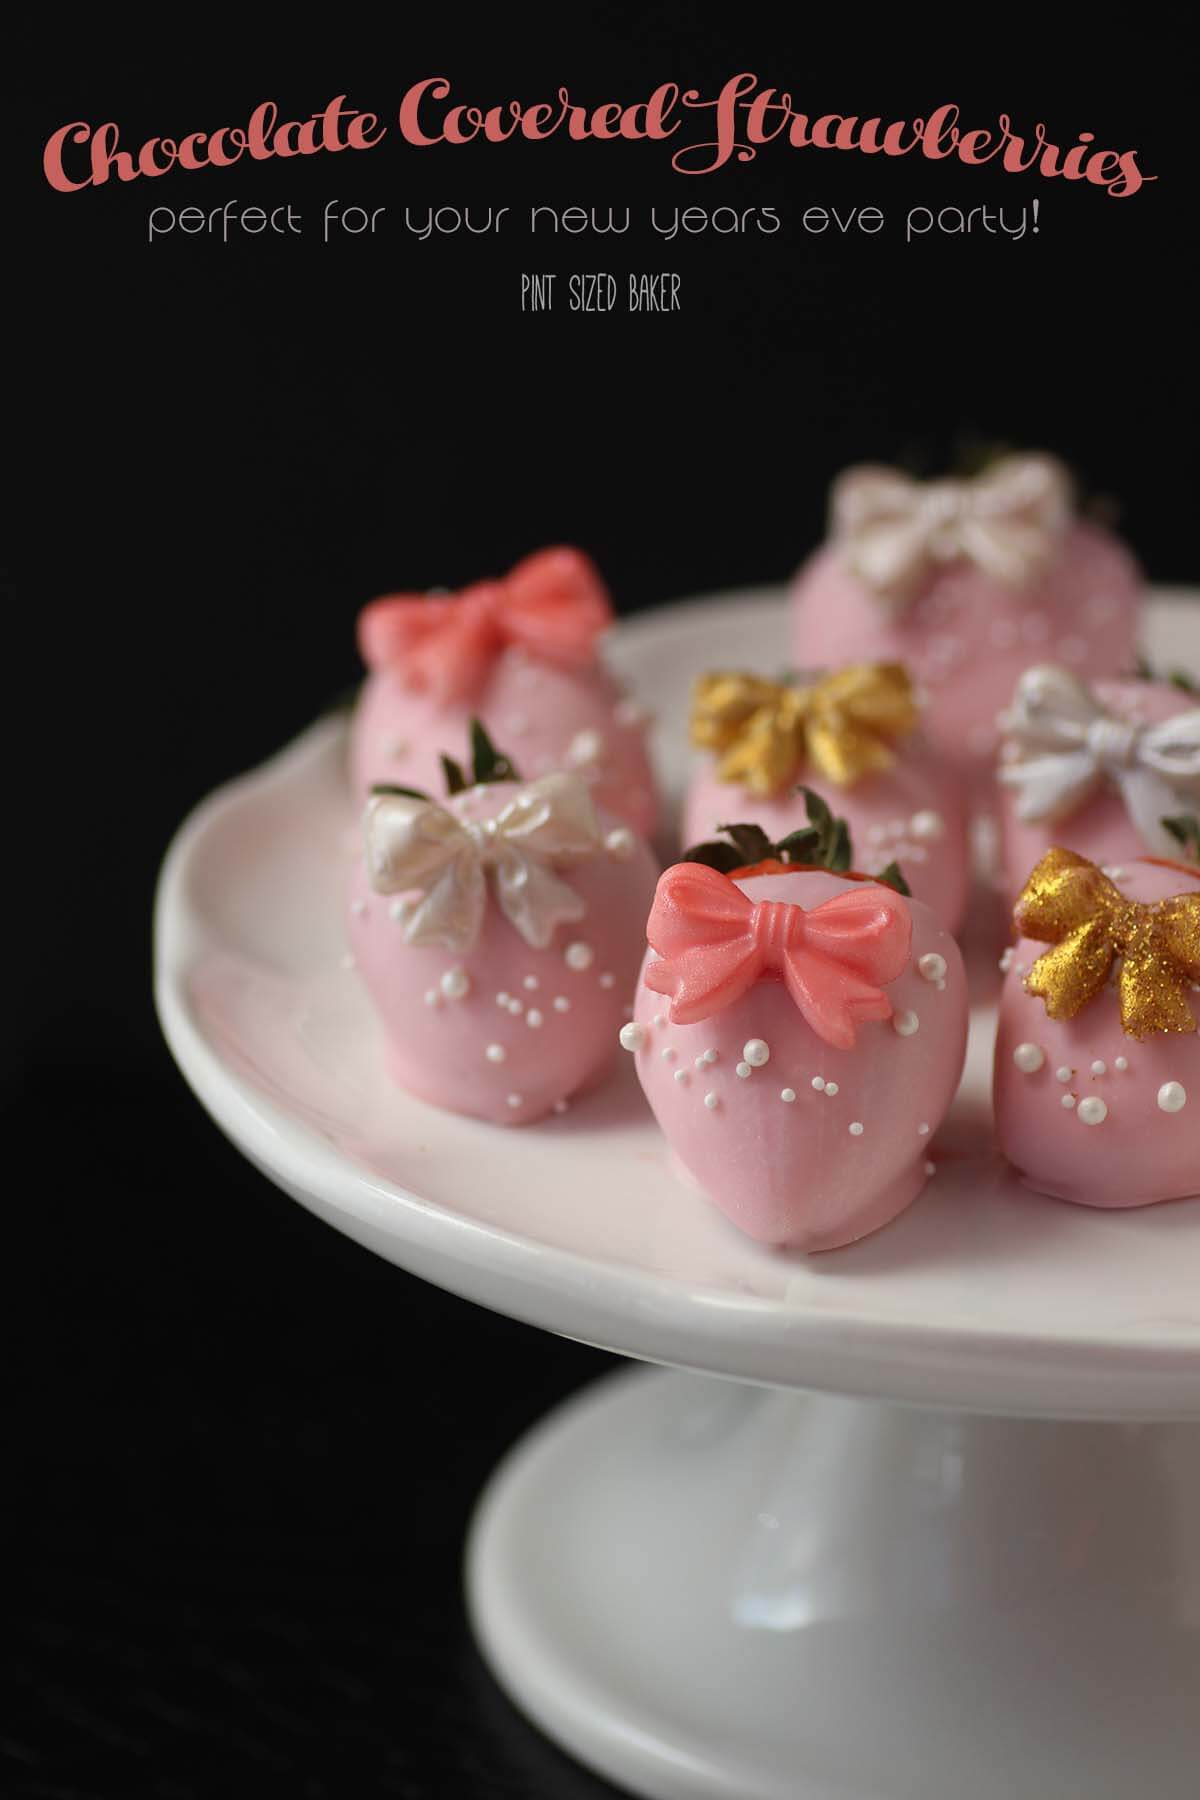 Pink Chocolate Covered Strawberries with pretty bows on. All dressed up for a thrilling New Years Eve or a fun Great Gatsby Party.